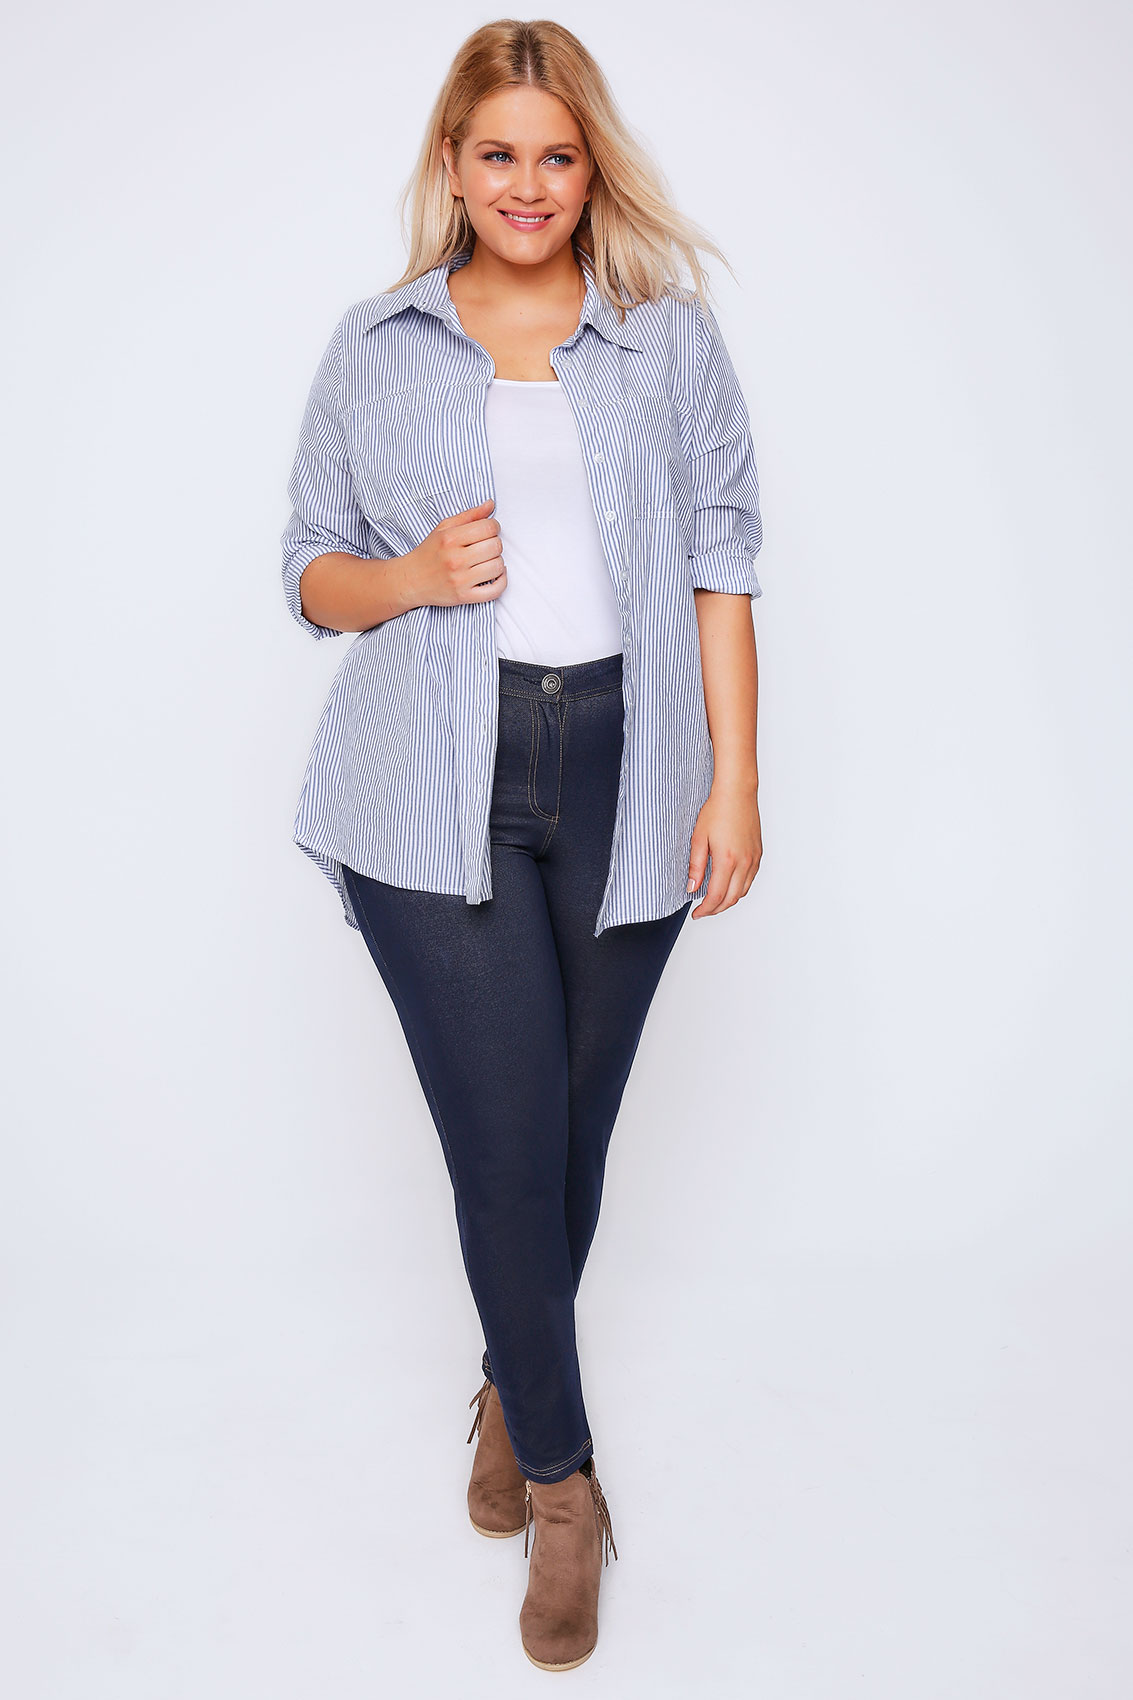 Plus size jeans are a comfortable and fashionable addition in any woman's wardrobe. Whether running a quick errand, hanging out with friends or headed into the office, a pair of jeans is always a great foundation for a comfortable outfit.